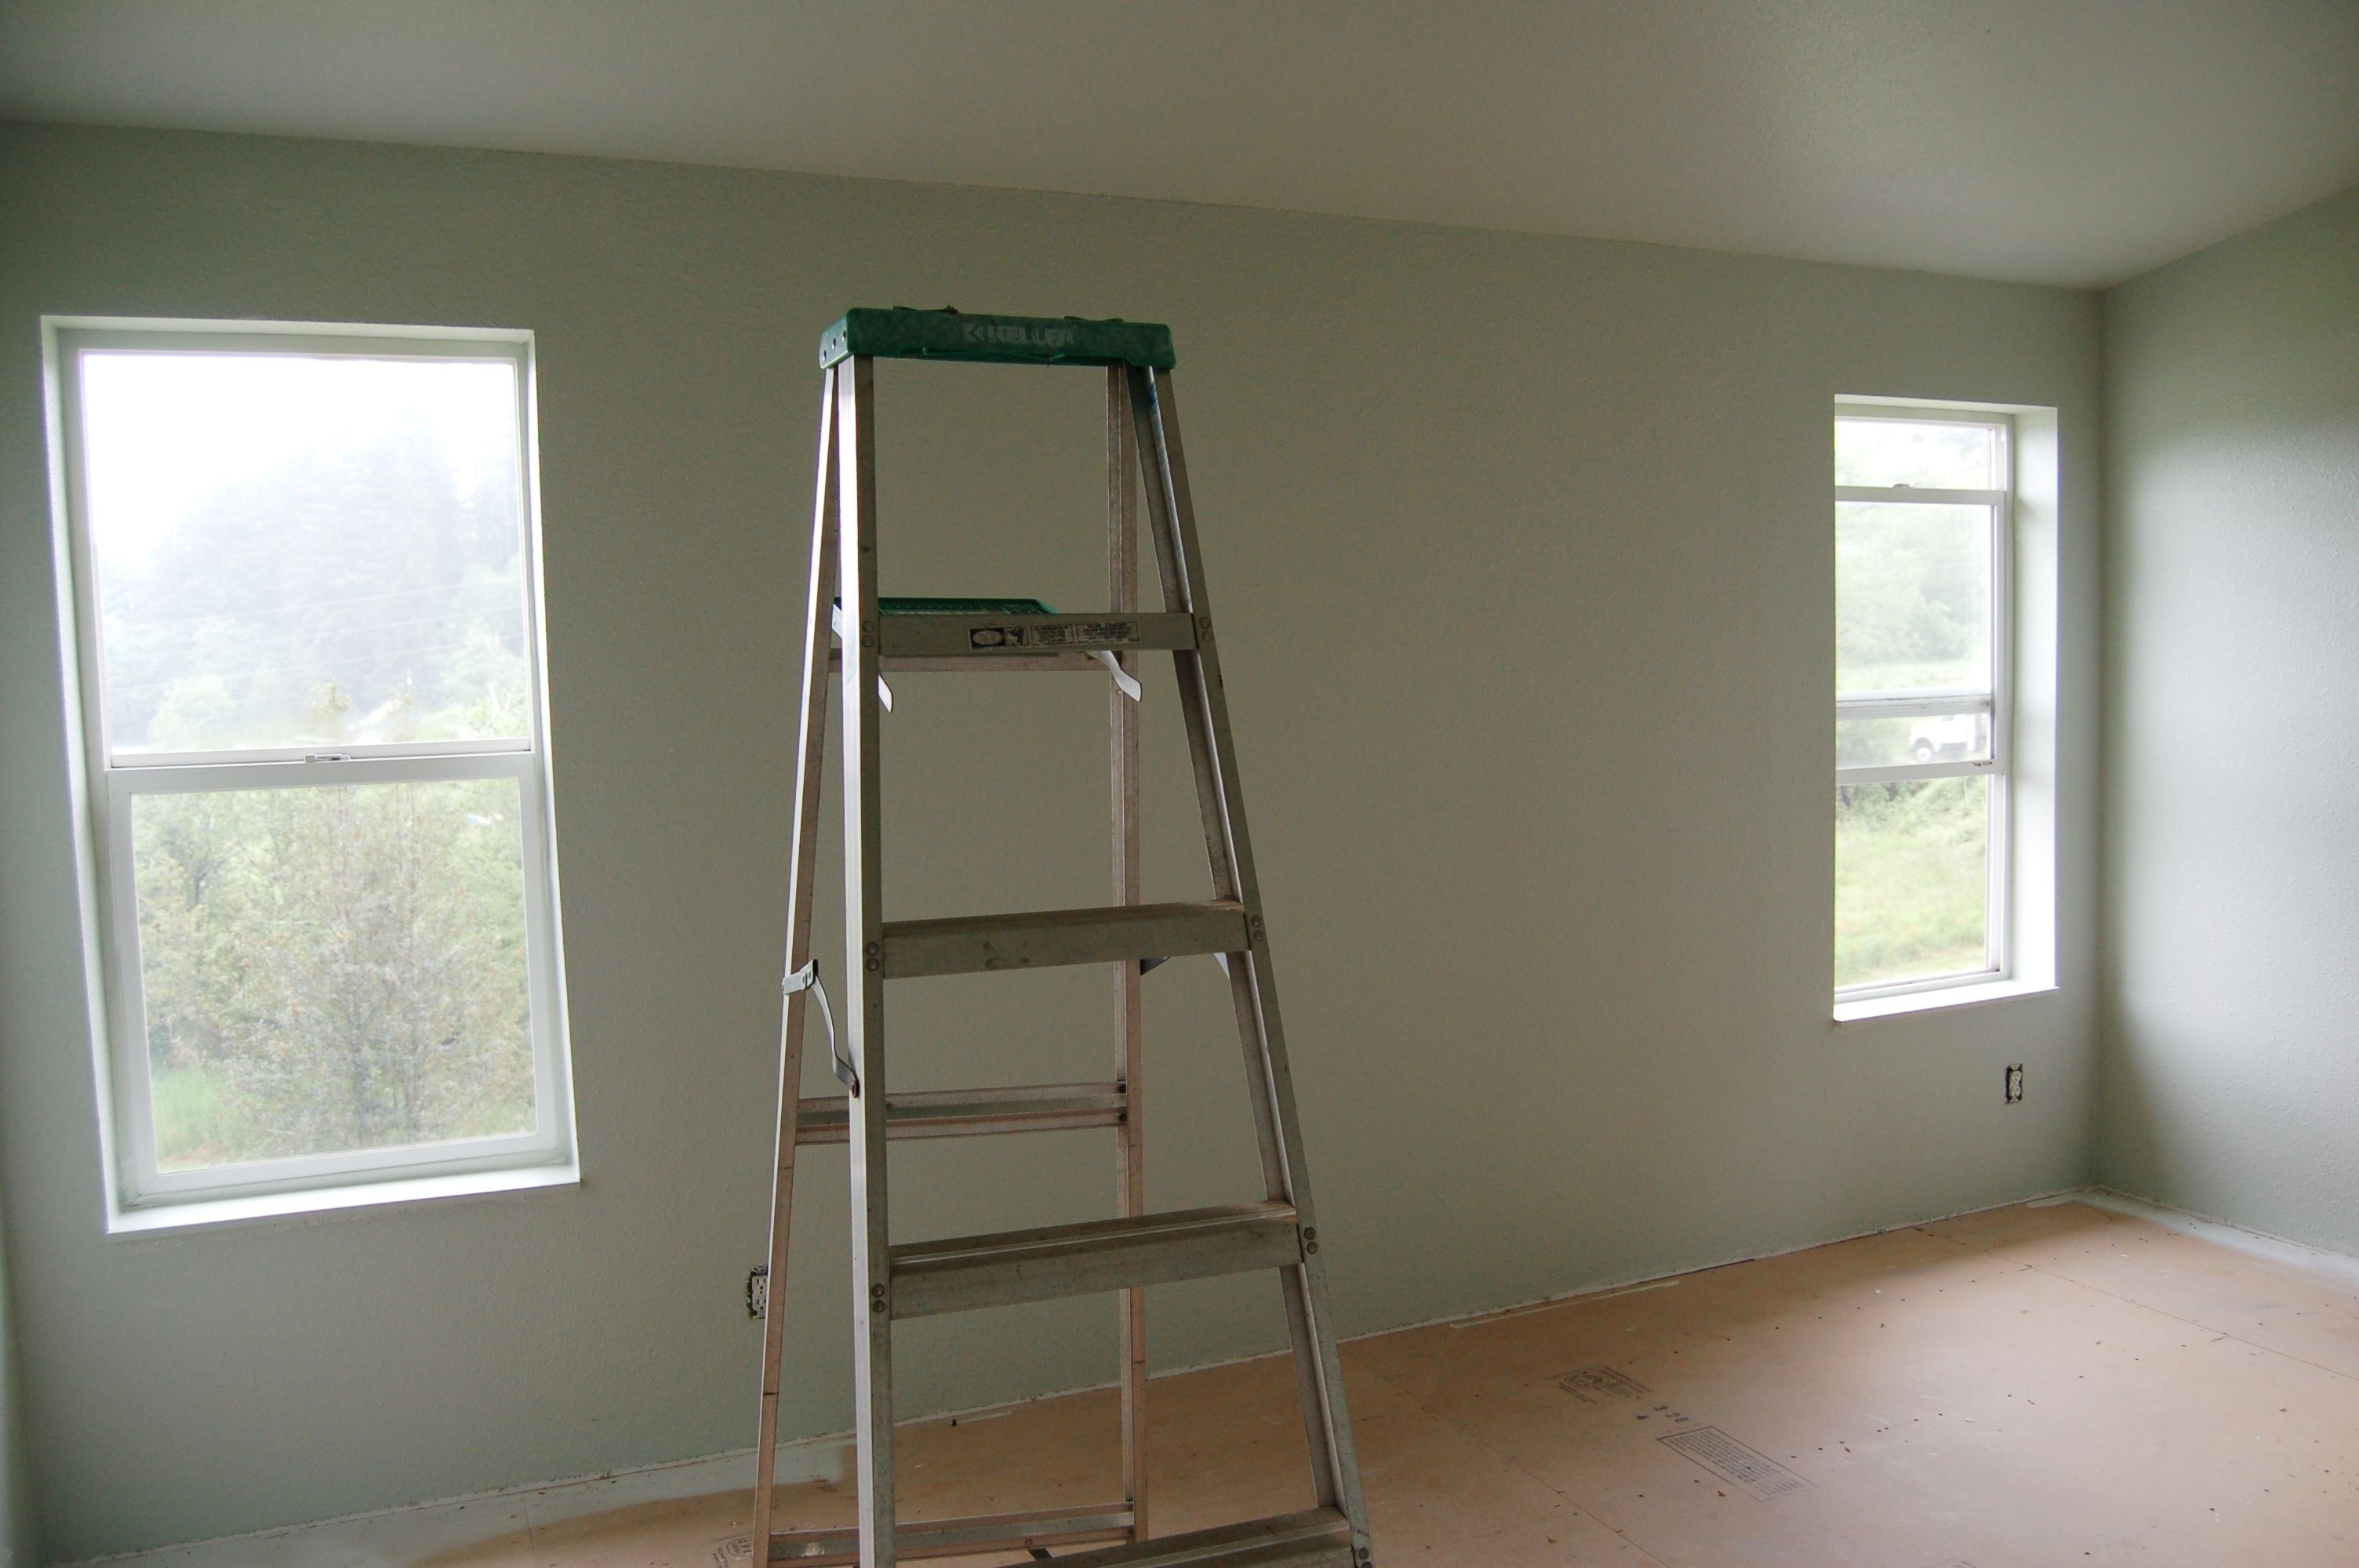 New In The Bedroom Sherwin Williams Filmy Green A New Color In The Bedroom